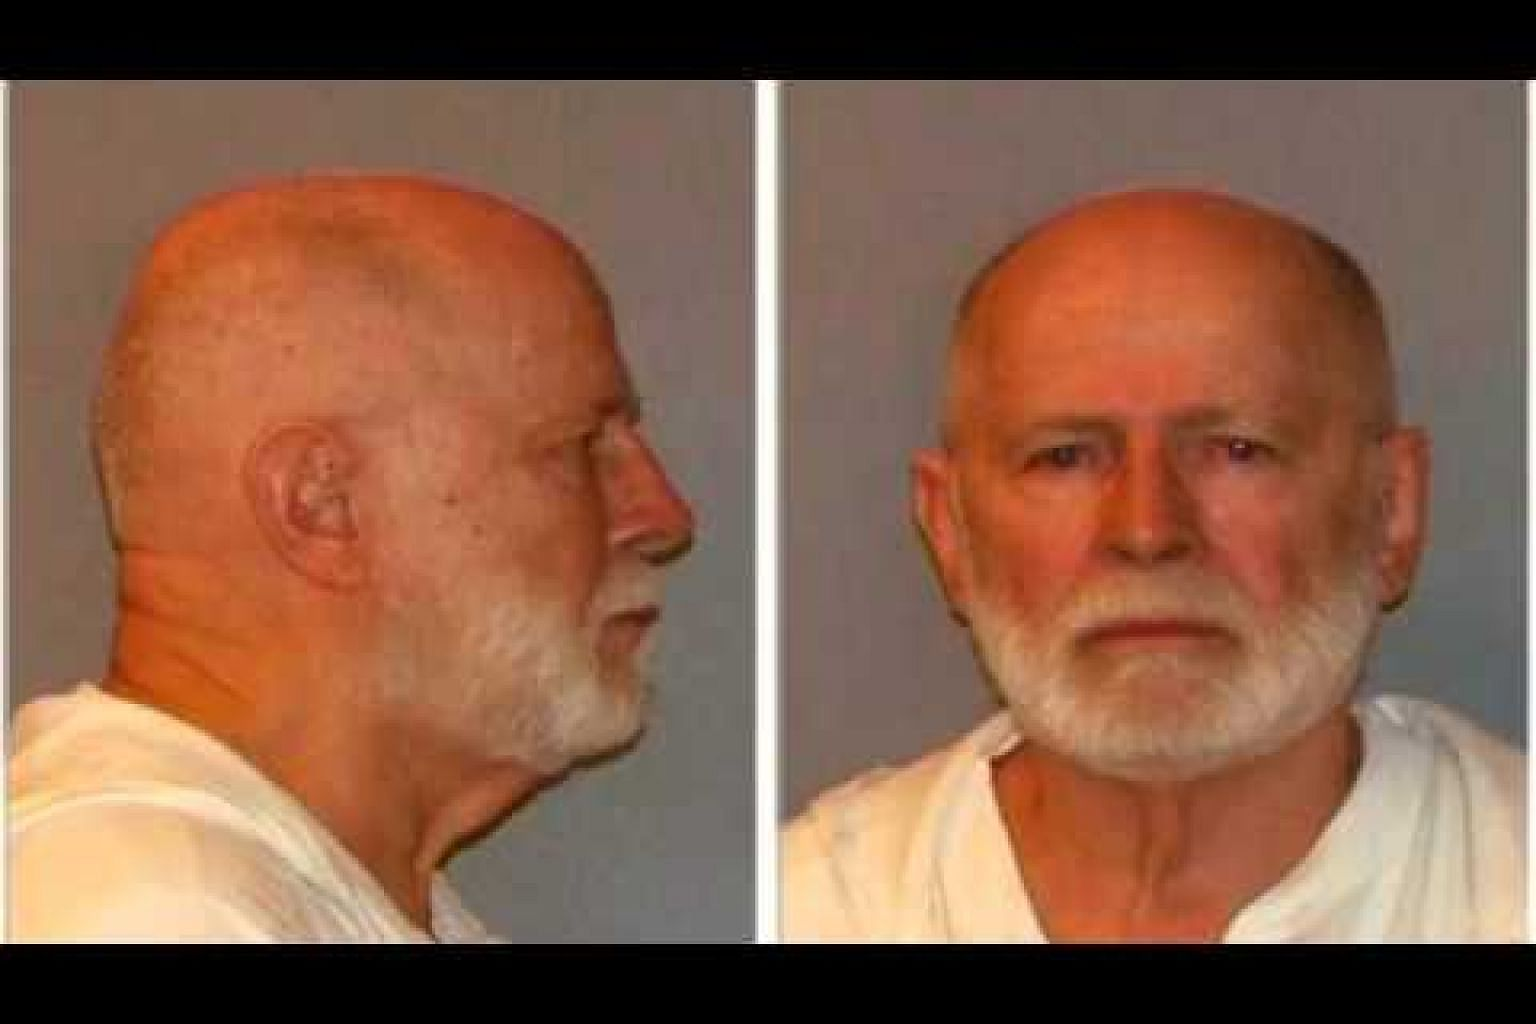 Notorious gangster 'Whitey' Bulger killed in prison